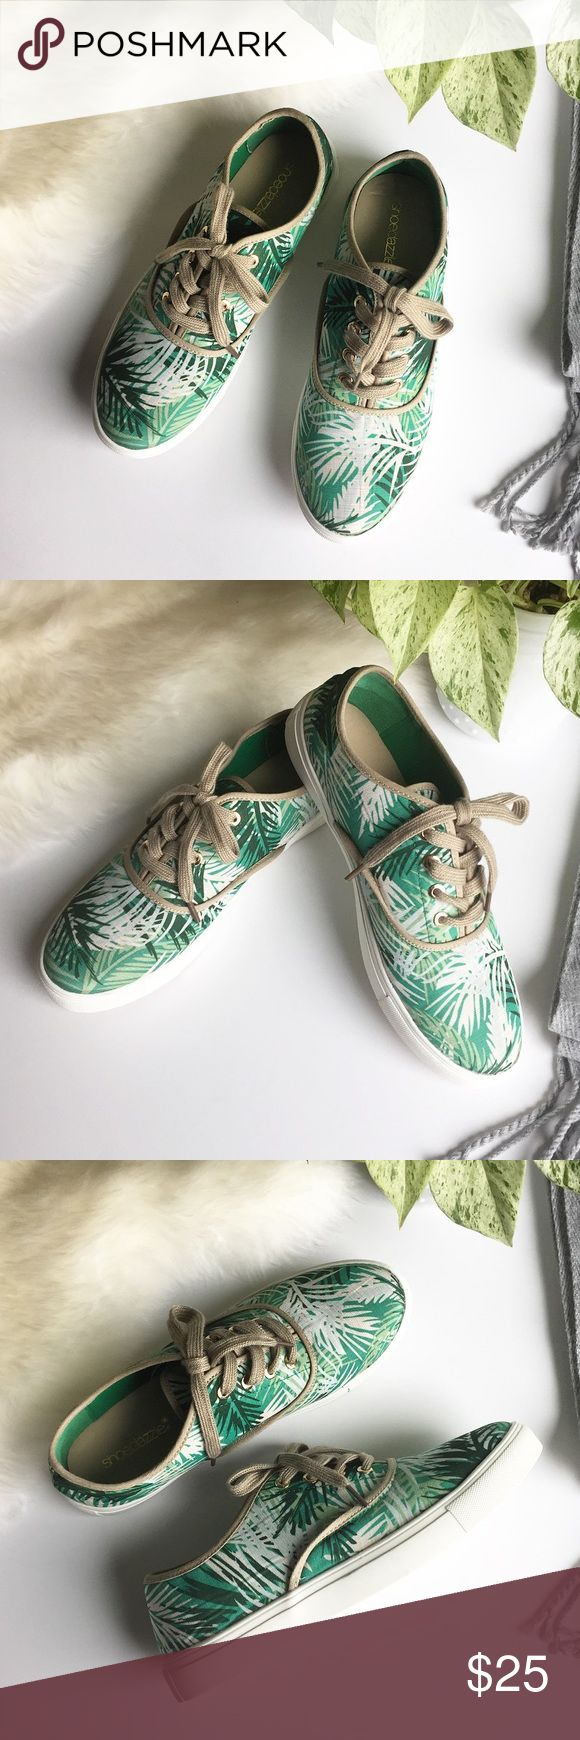 💥Super Sale💥 - SHOE DAZZLE - Palm Print Sneakers Classsic lace up sneakers get refreshed with a beach palm print so you can always be on the beach! Excellent pre-loved condition, no flaws.  🔸Bundle & Save 15% on 2+ items!                         🔸Free gift on purchases over $100!                    🙅🏼No trades / selling off of Posh.                          🌟Offers always welcome!🌟 (low-ball offer = counteroffer 😊) Shoe Dazzle Shoes Sneakers